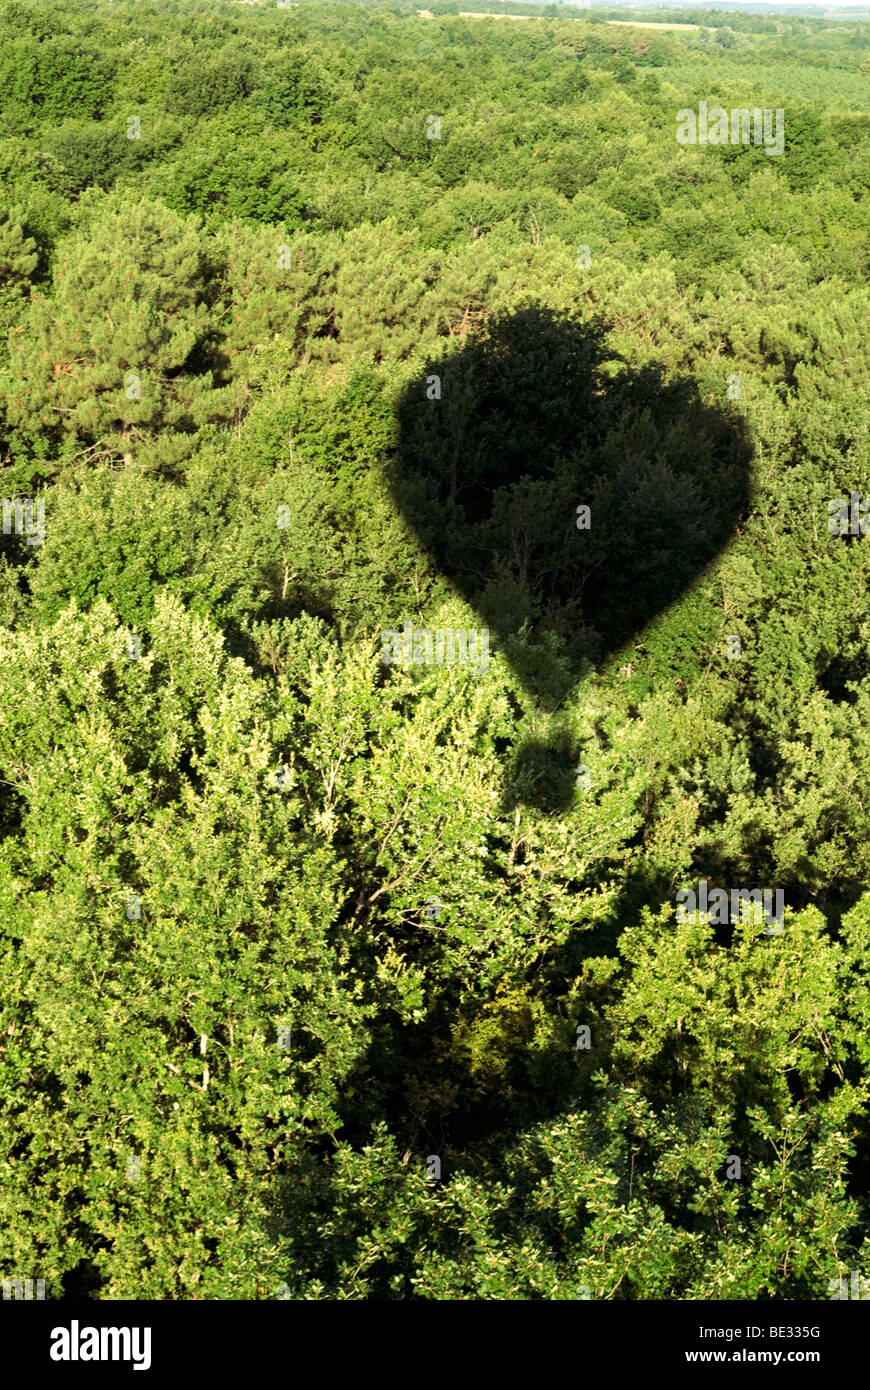 aerial view from hot air balloon basket looking down over forest in the Dordoigne, France - Stock Image